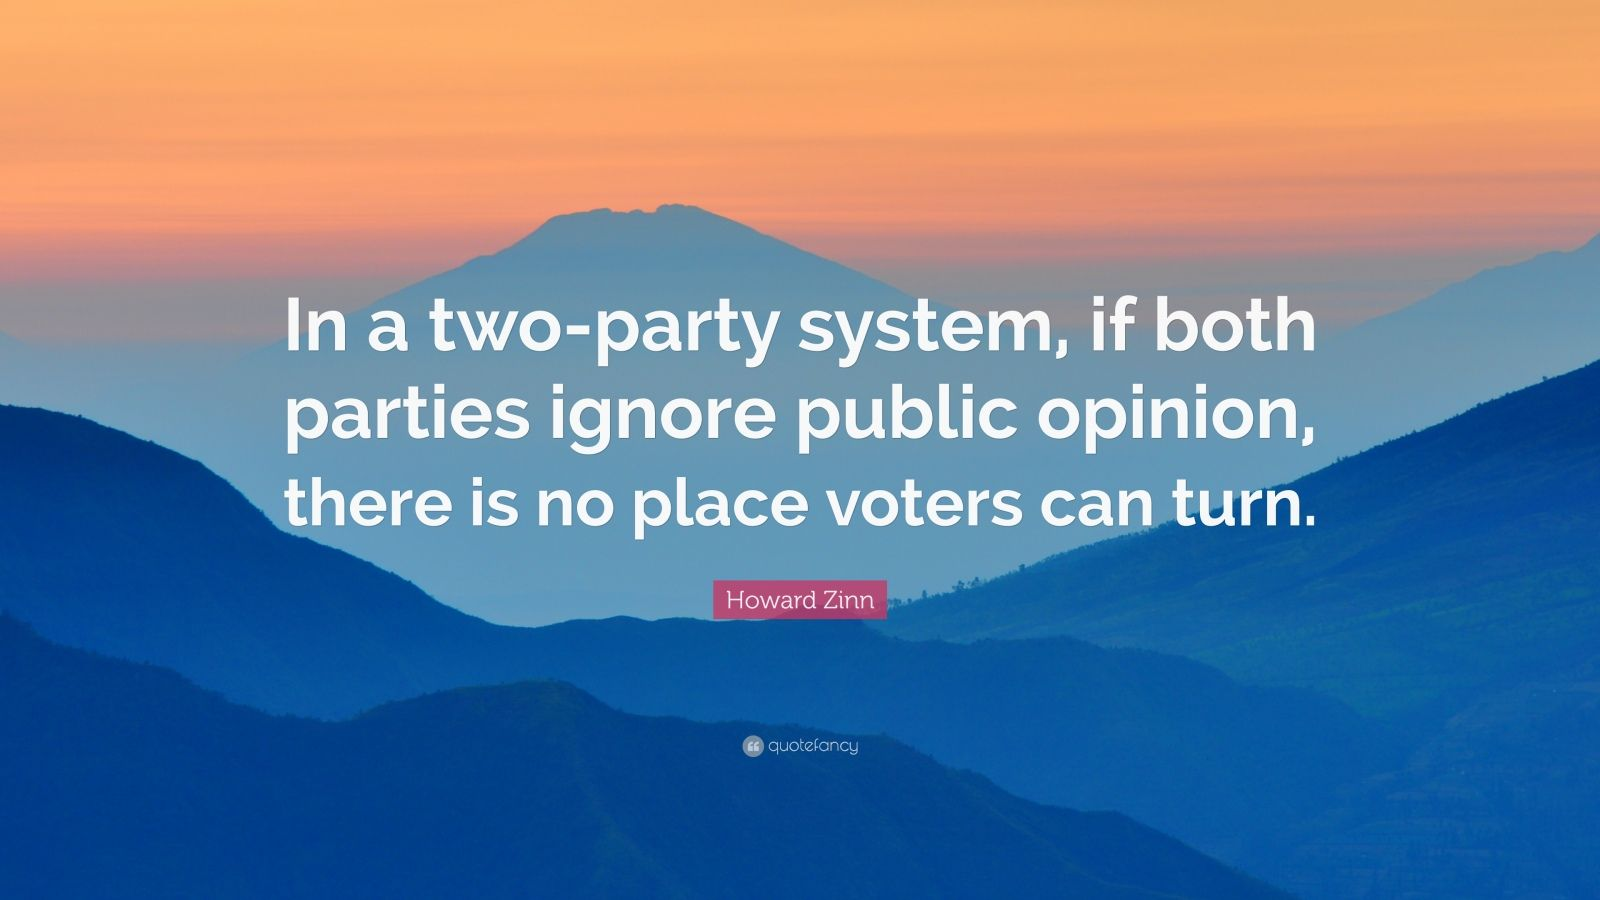 """Howard Zinn Quote: """"In a two-party system, if both parties ignore public opinion, there is no place voters can turn."""""""